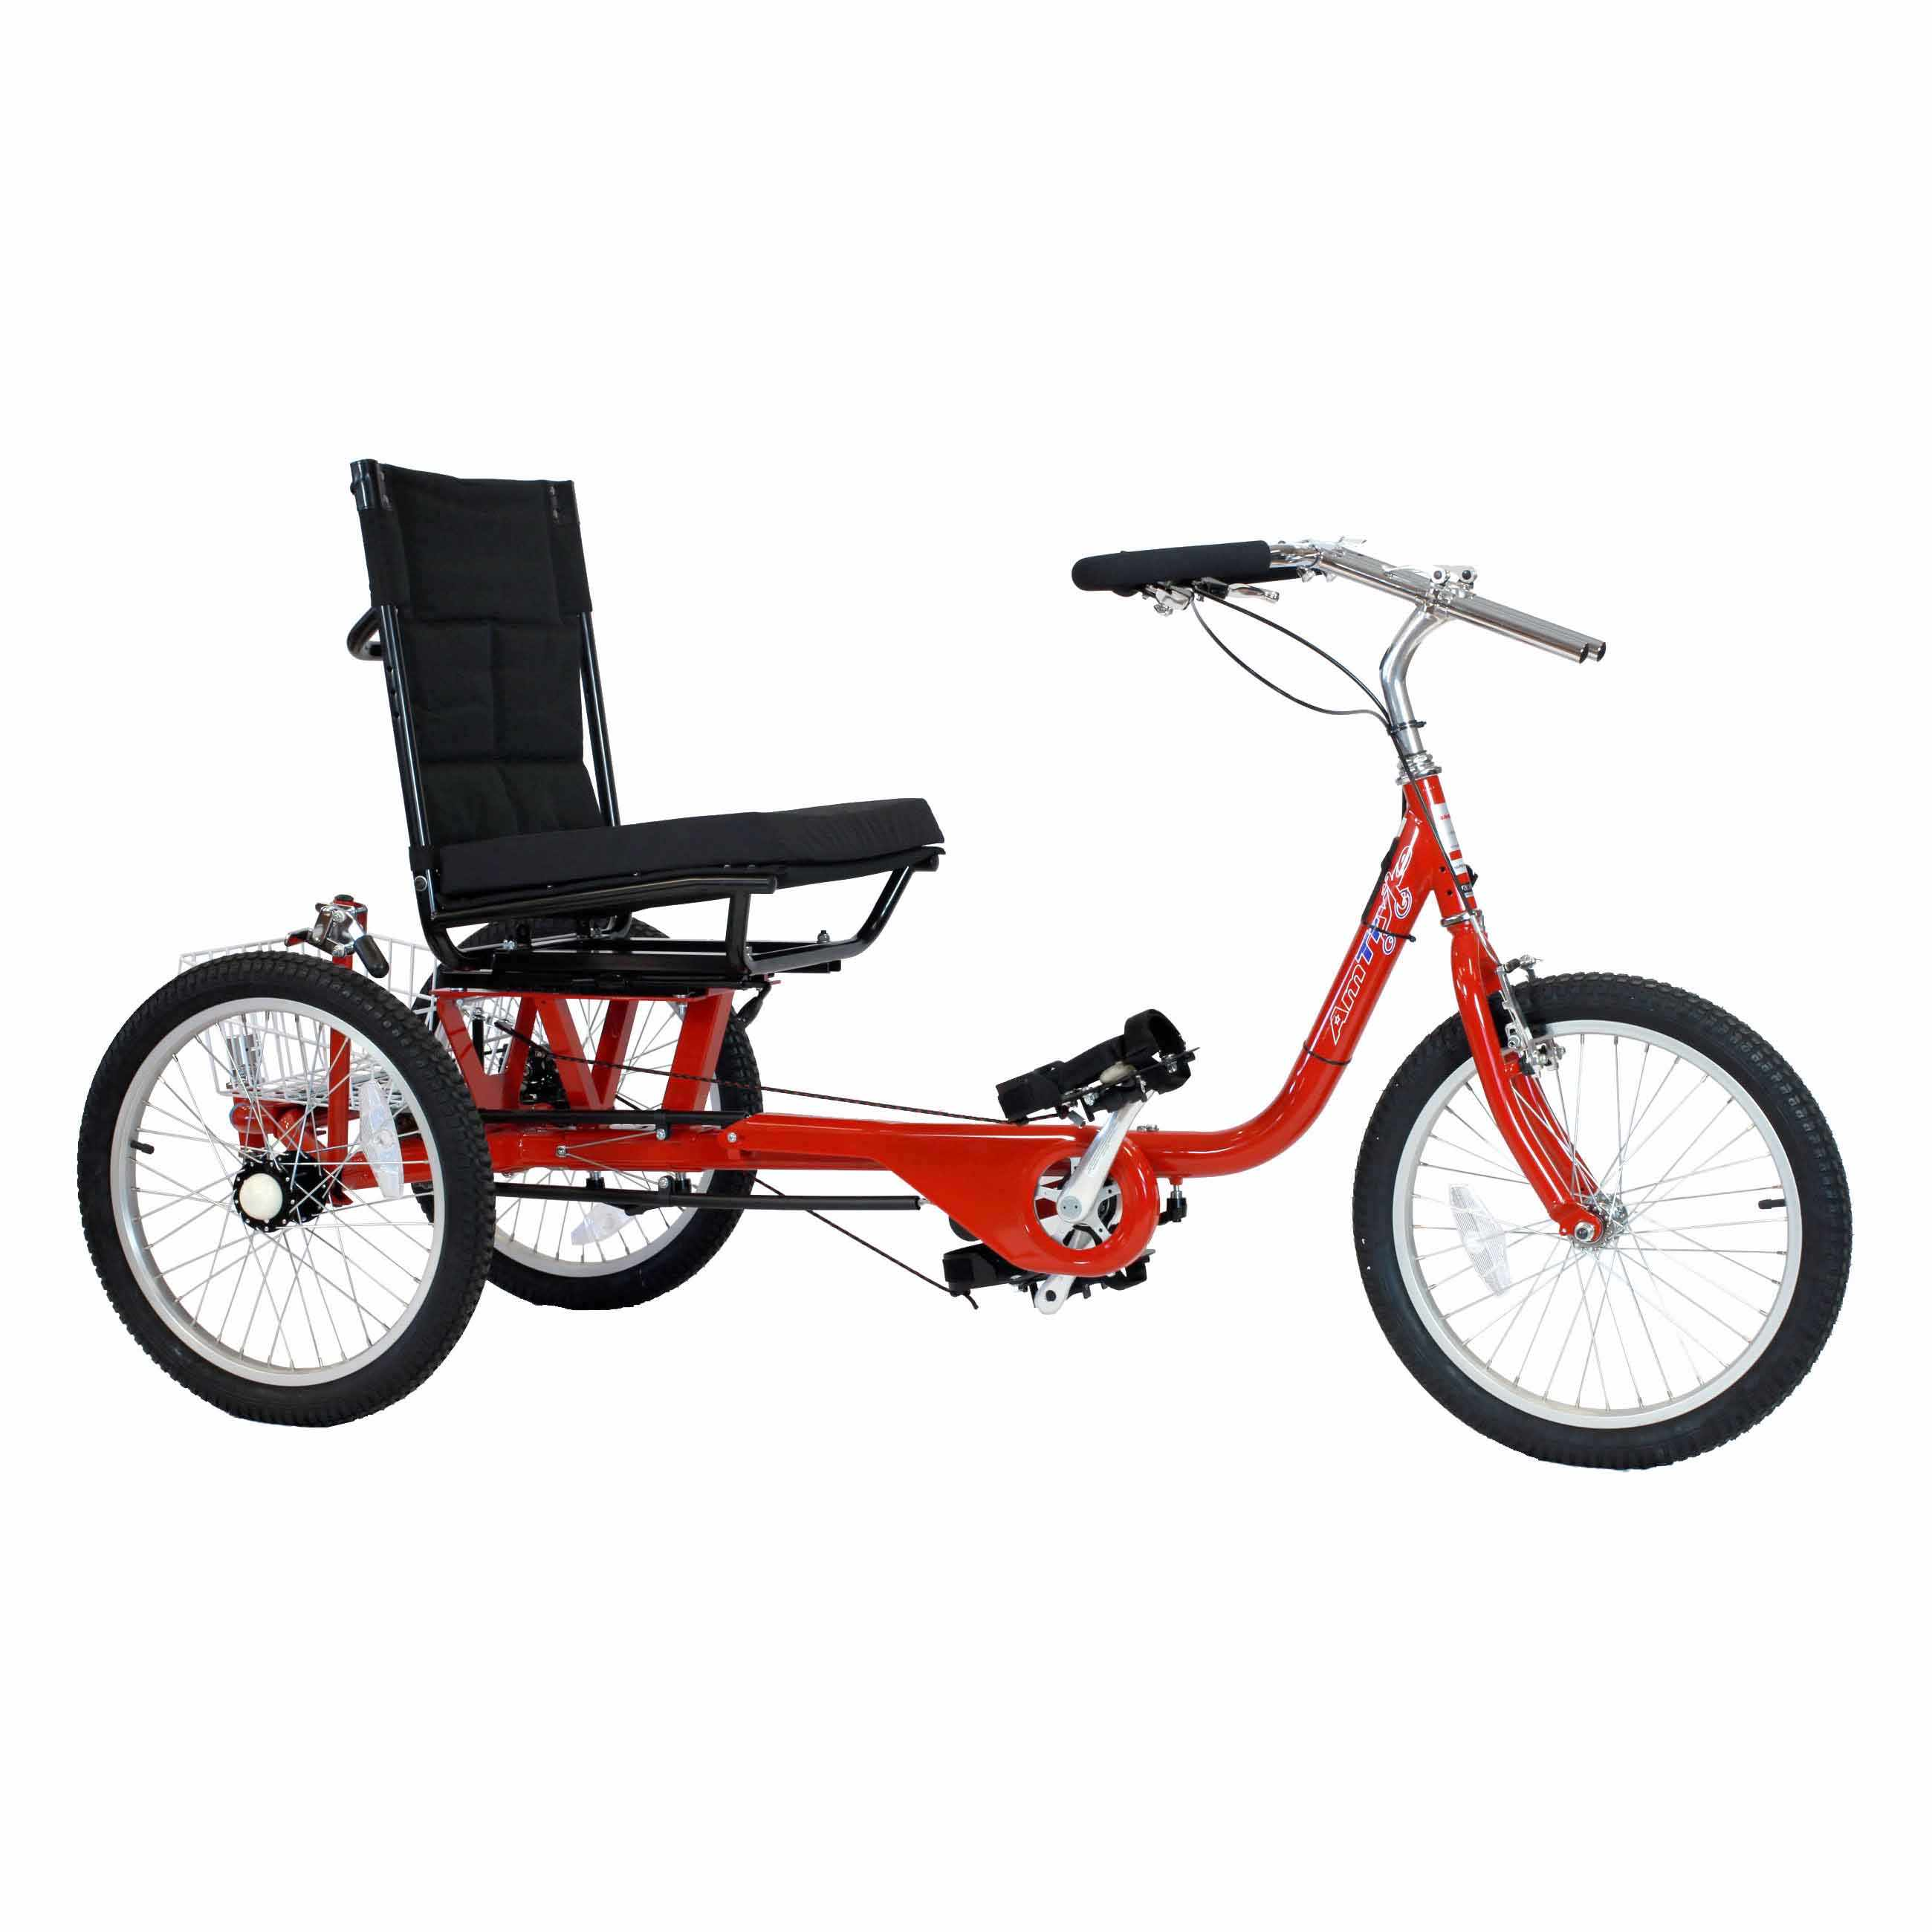 Amtryke Proseries 1420Xl With Wheelchair Seat | Amtryke Tricycles